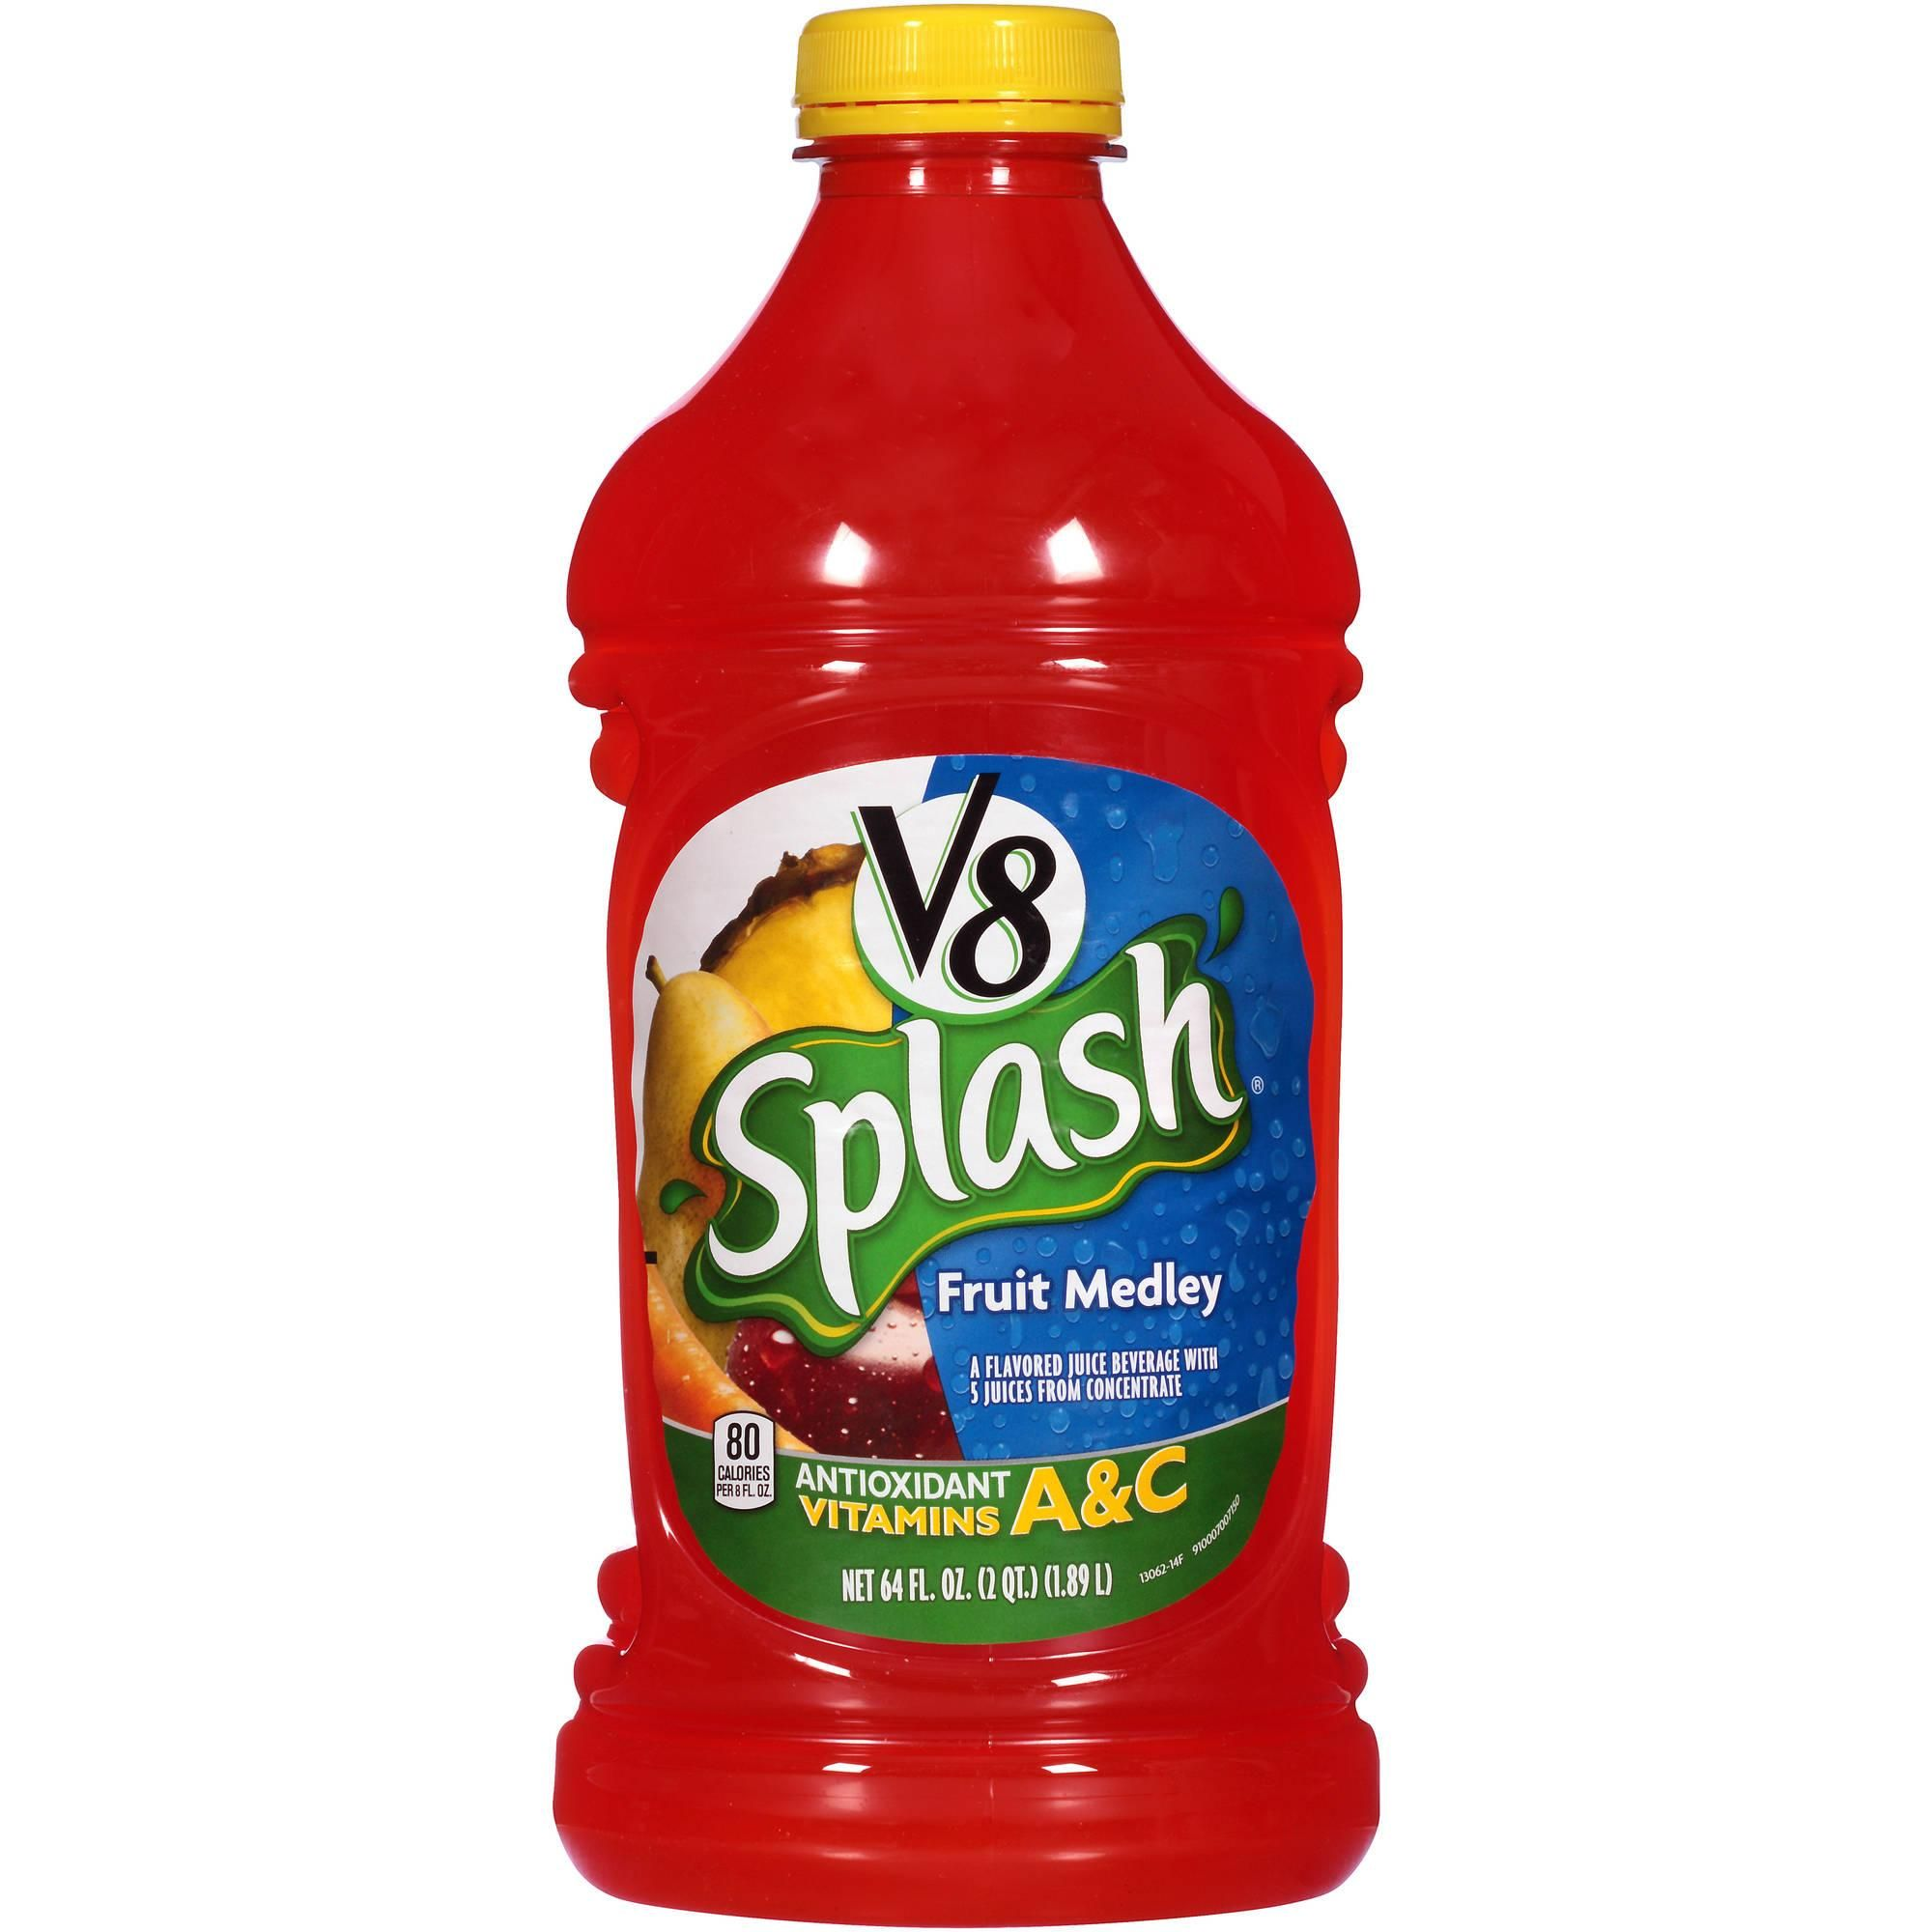 V8 Splash Fruit Medley 64 Oz Walmart Com Raspberry Smoothie Juice Flavors Slim Smoothies